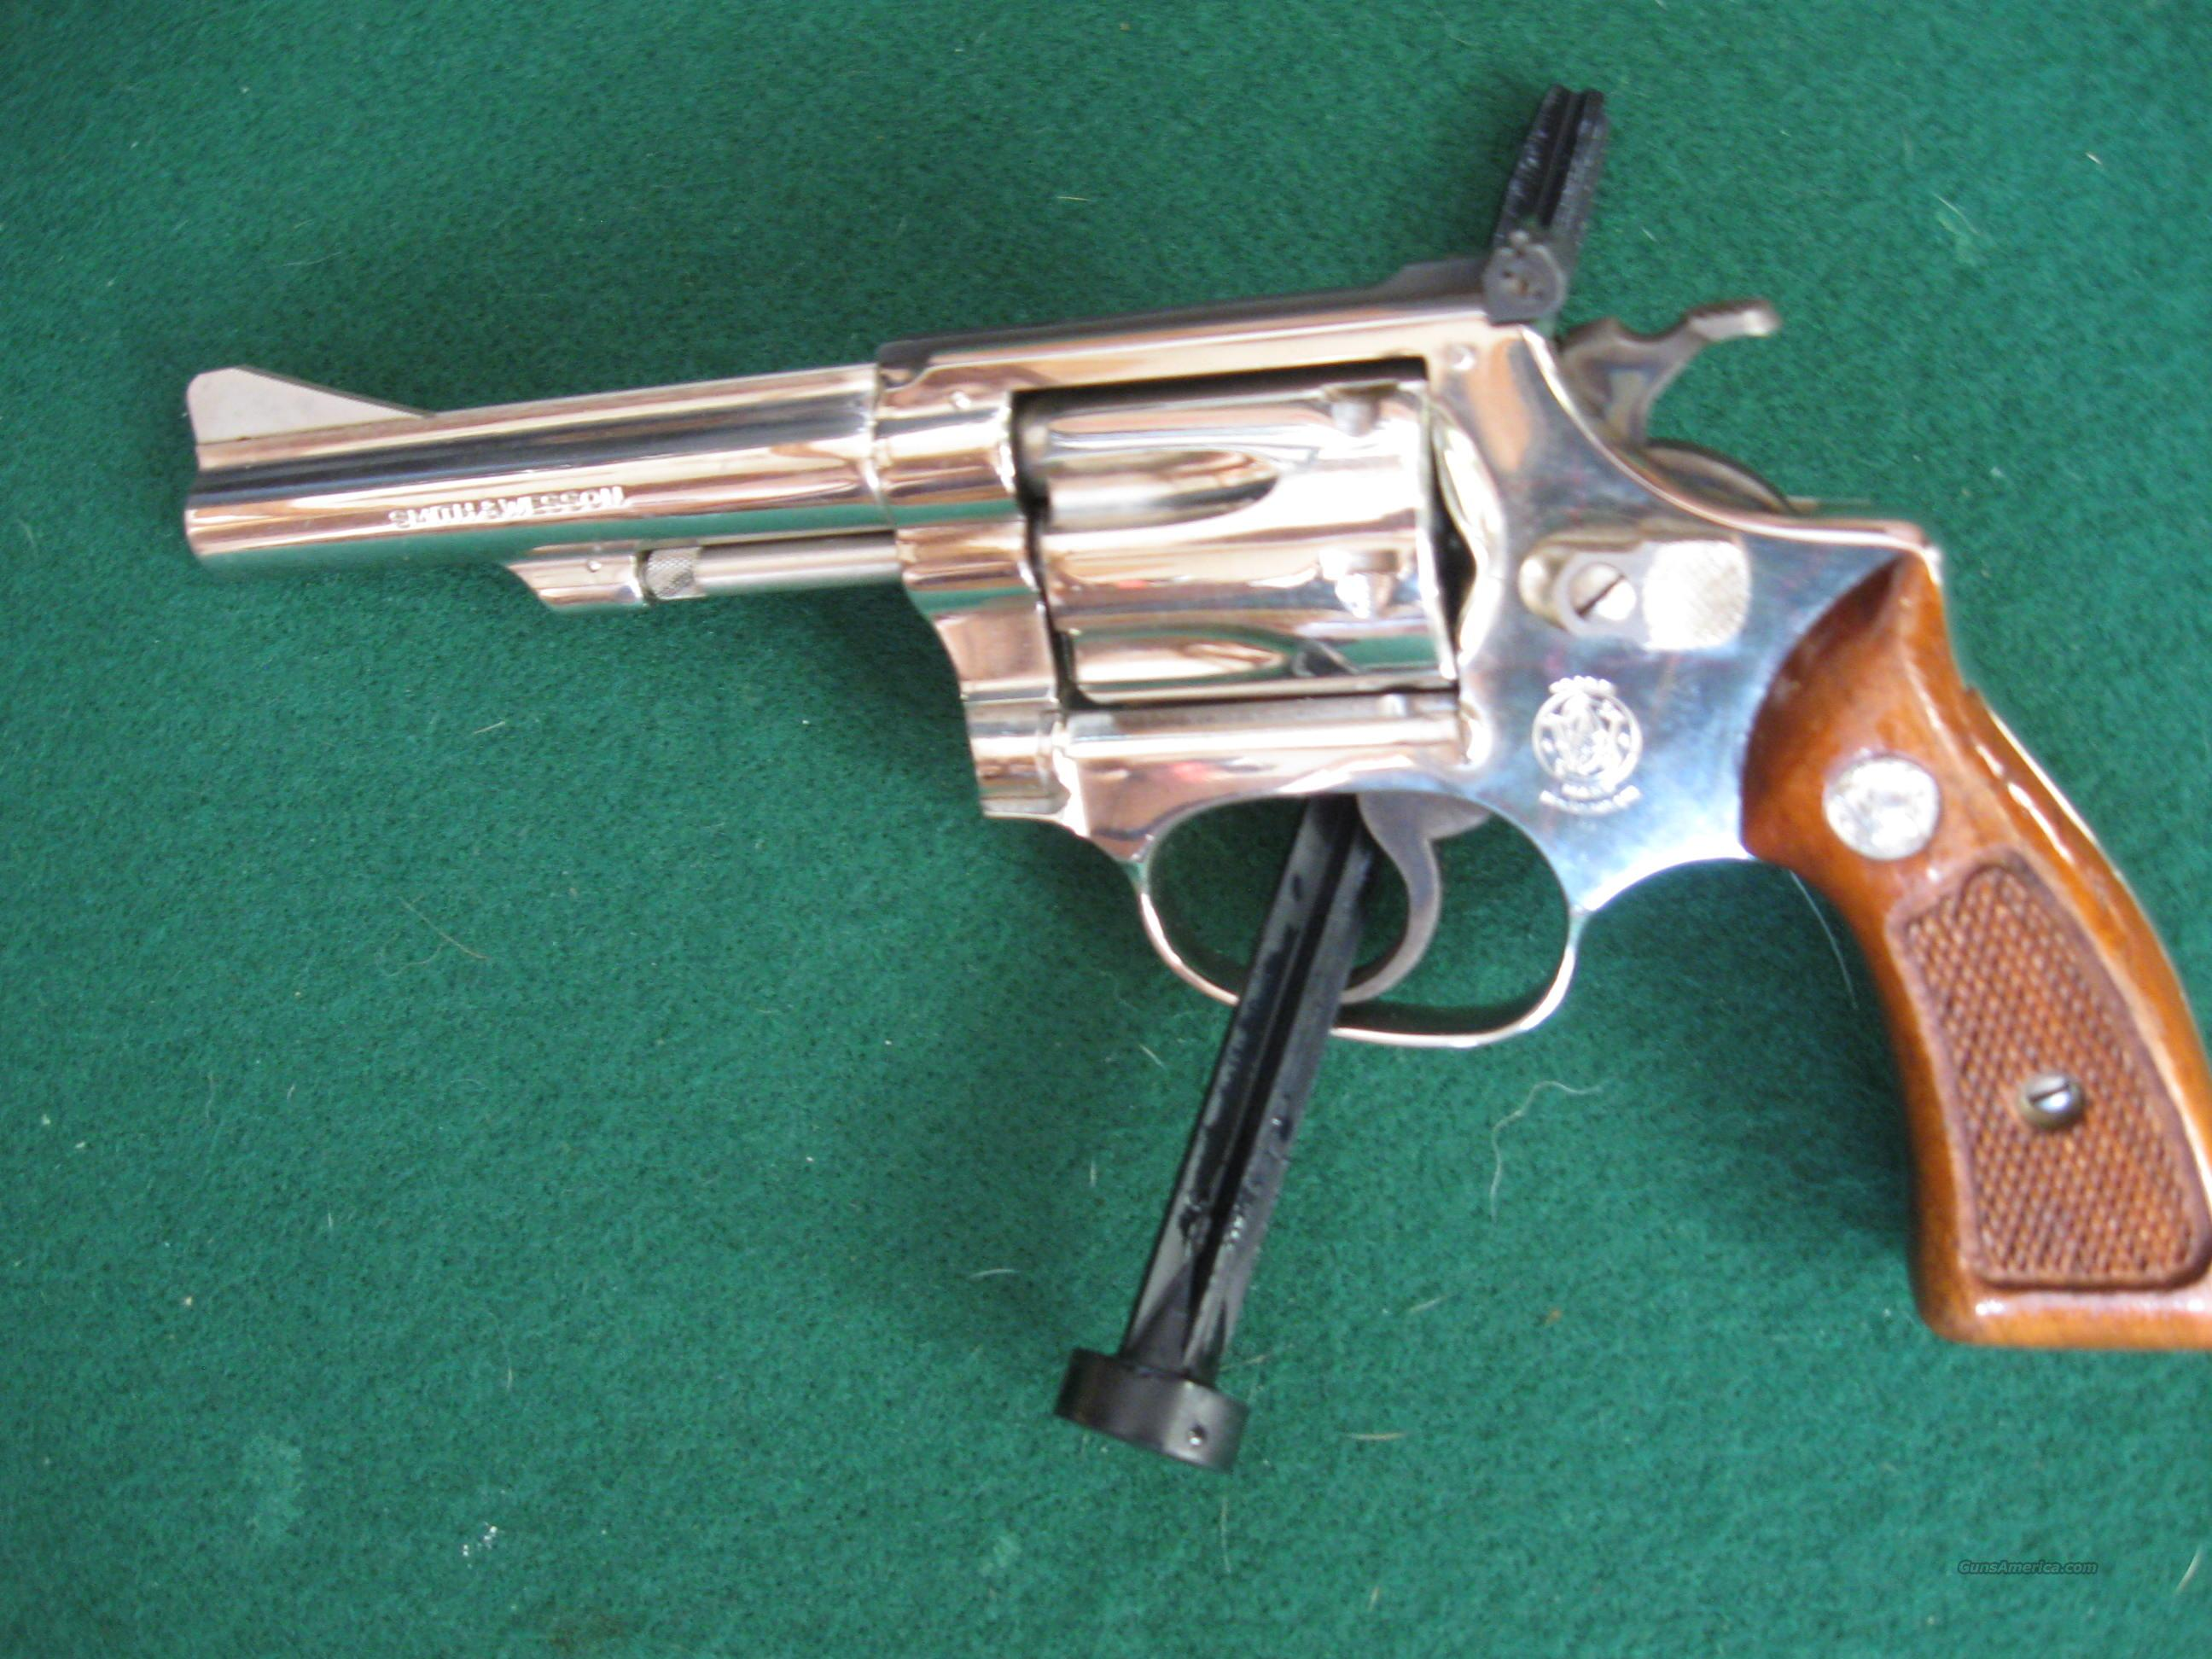 Smith & Wesson 34-1  Guns > Pistols > Smith & Wesson Revolvers > Pocket Pistols